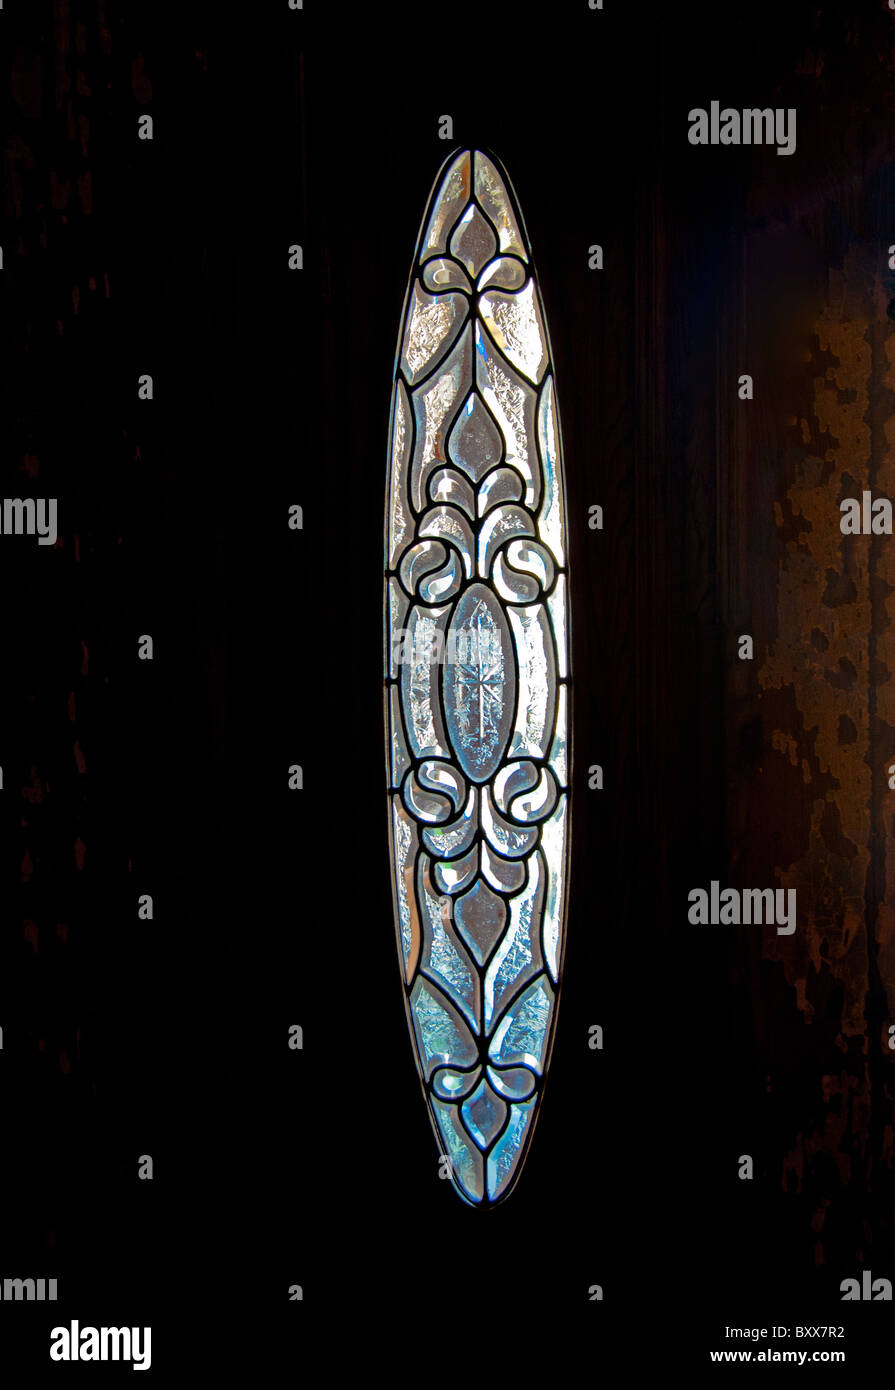 Antique stained glass door panel - Stock Image